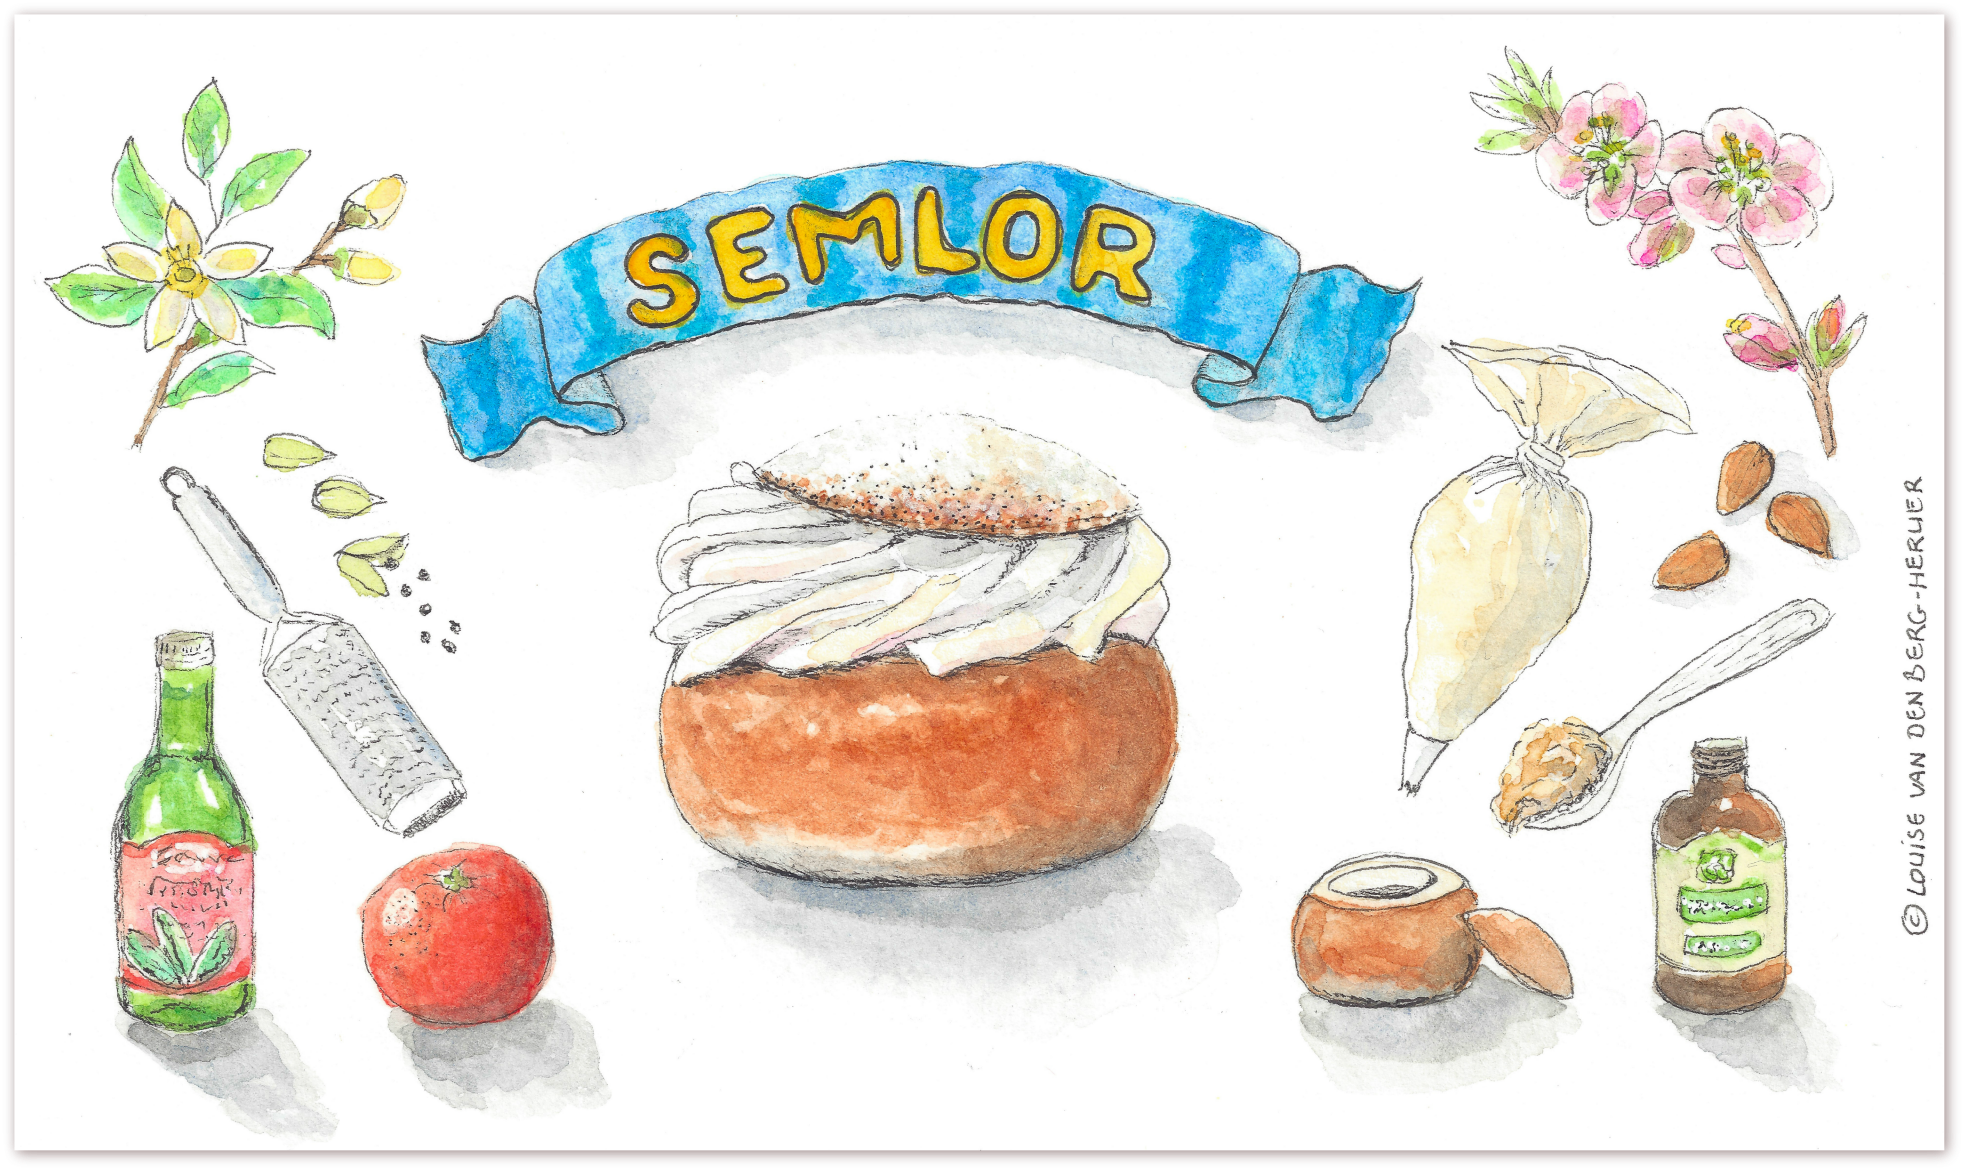 semlor illustratie